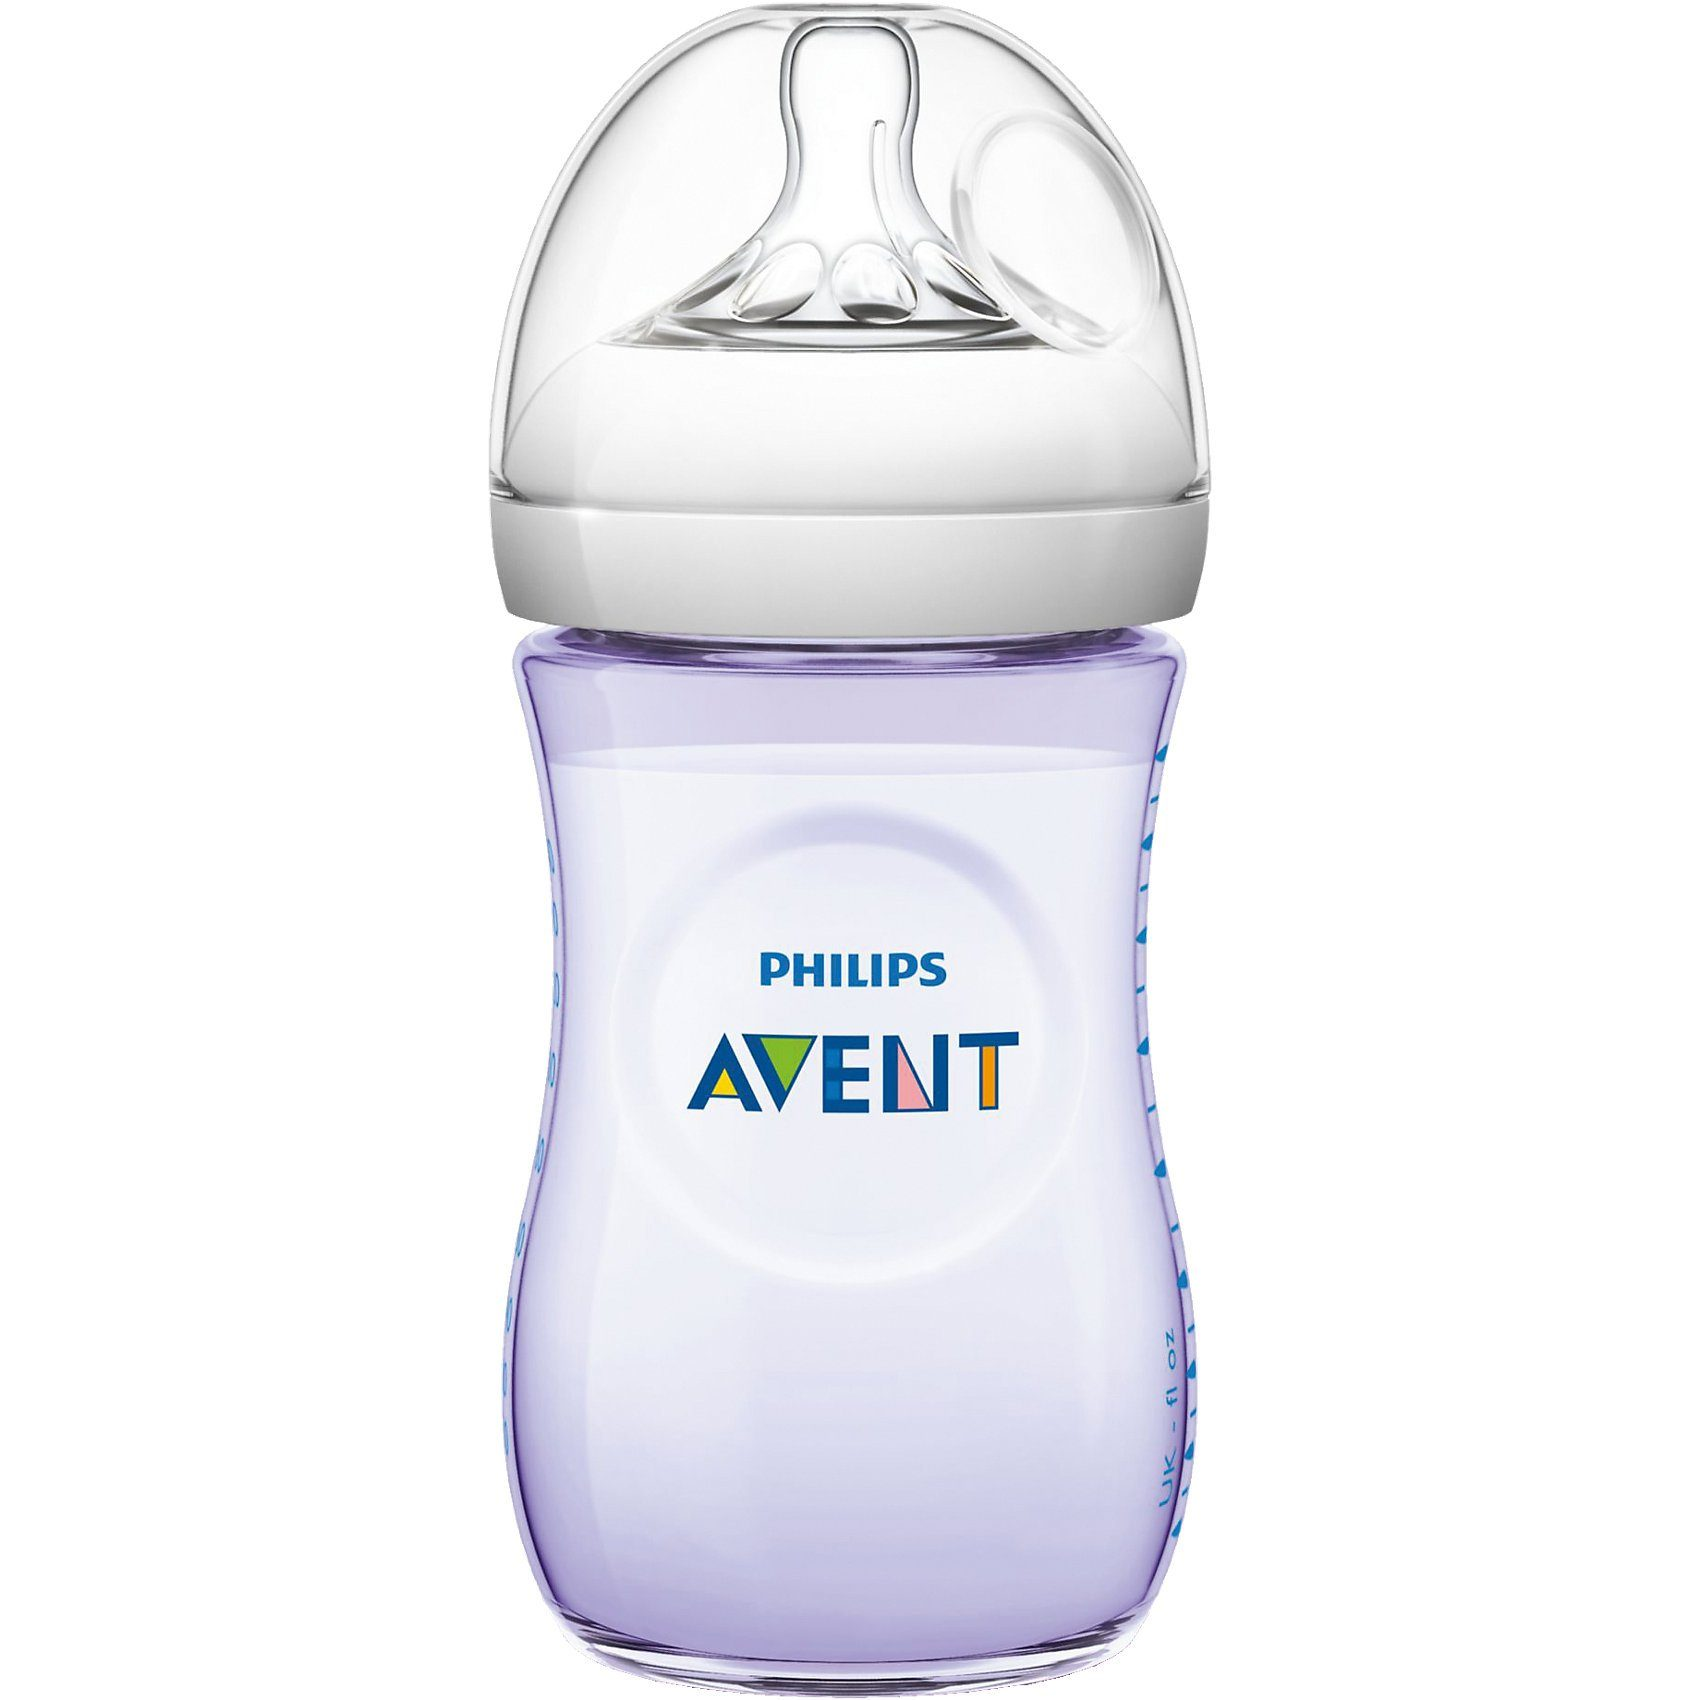 PHILIPS AVENT Weithals Flasche Naturnah SCF693/14, PP, 260 ml, Silikonsaug